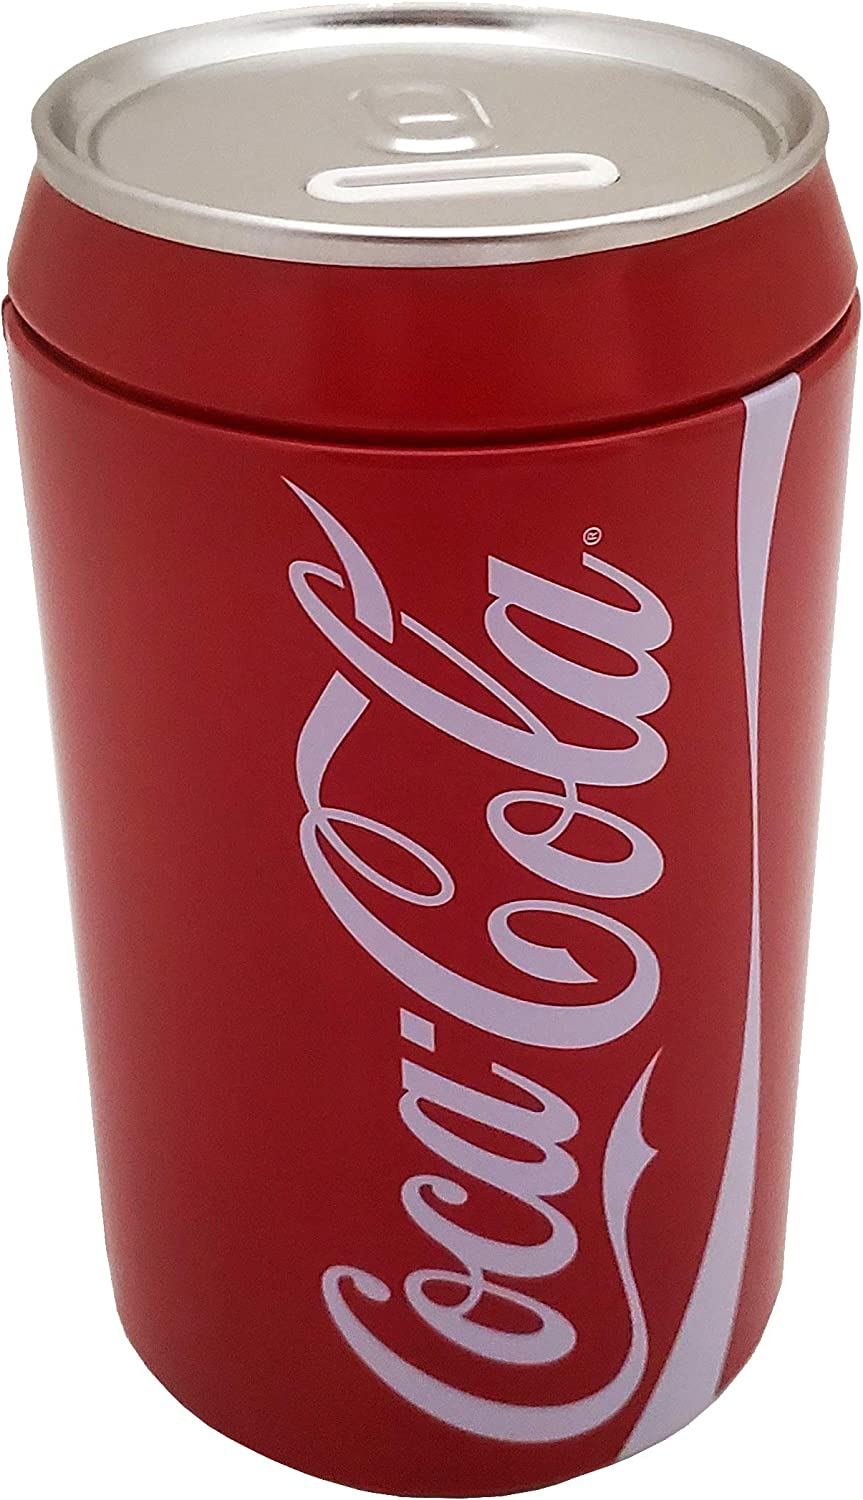 Amazon Com The Tin Box Company Coca Cola Can Bank With Removable Lid Red Model 660227 12 Toys Games